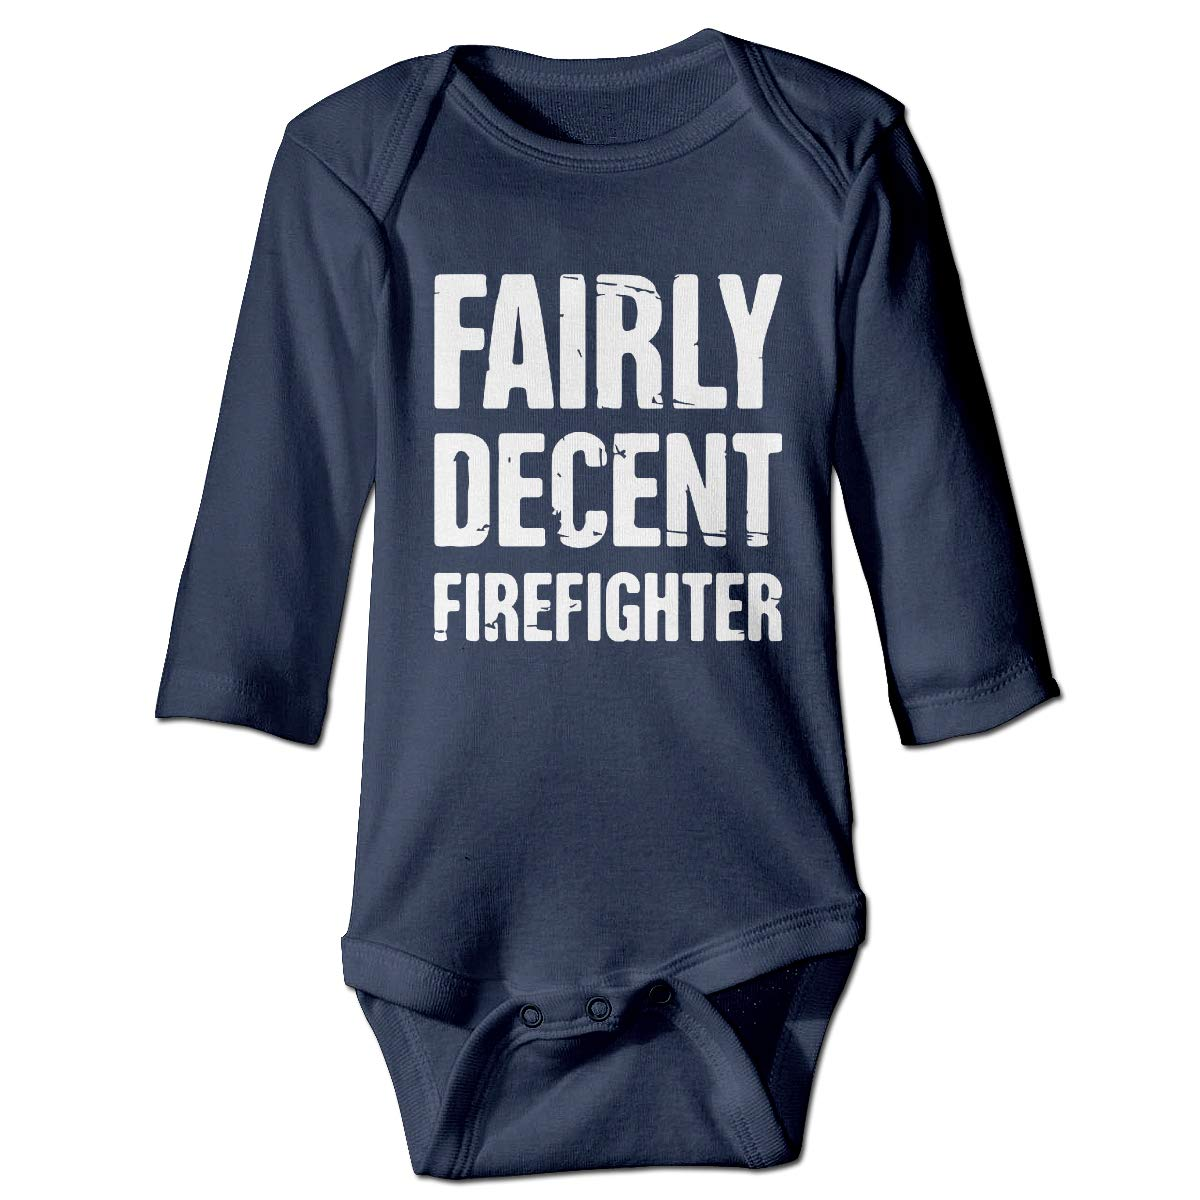 A14UBP Newborn Baby Boys Girls Long Sleeve Jumpsuit Romper Fairly Decent Firefighter Unisex Button Playsuit Outfit Clothes